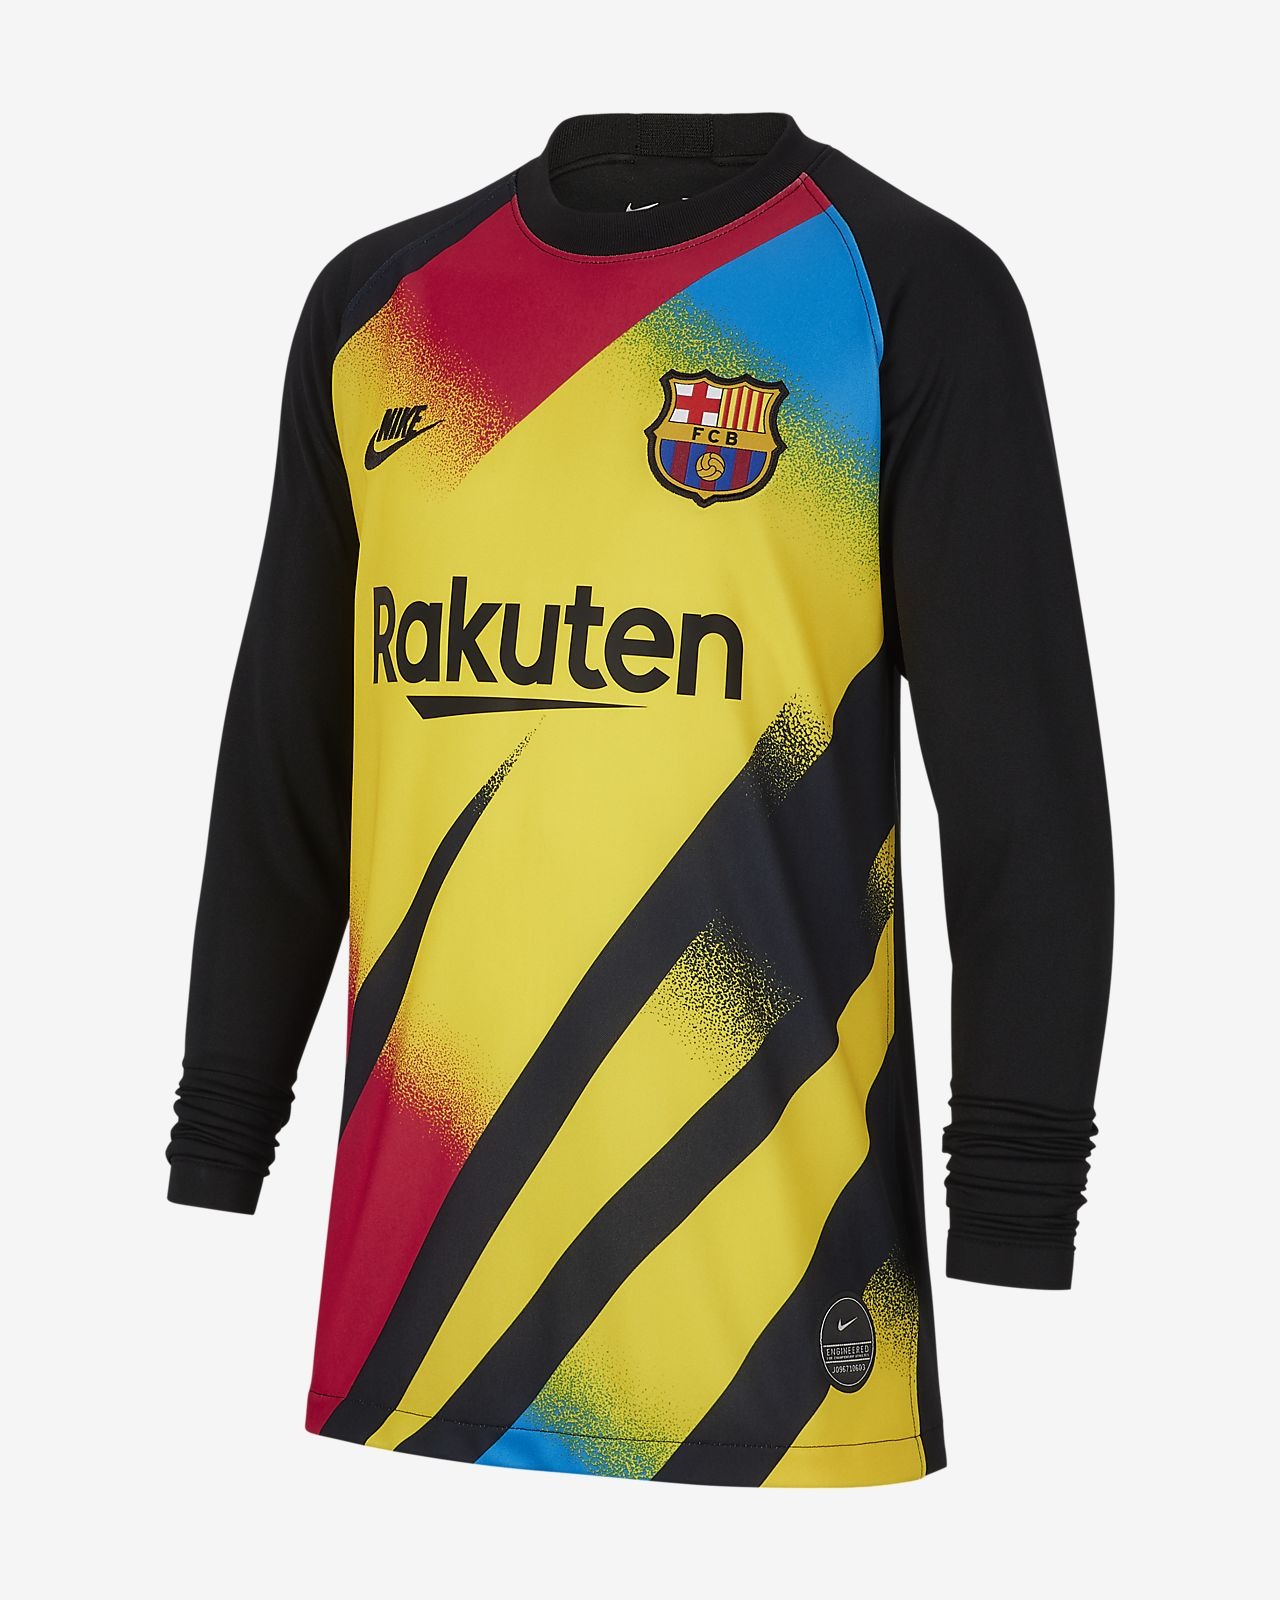 Maillot de football FC Barcelona 201920 Stadium Goalkeeper pour Enfant plus âgé